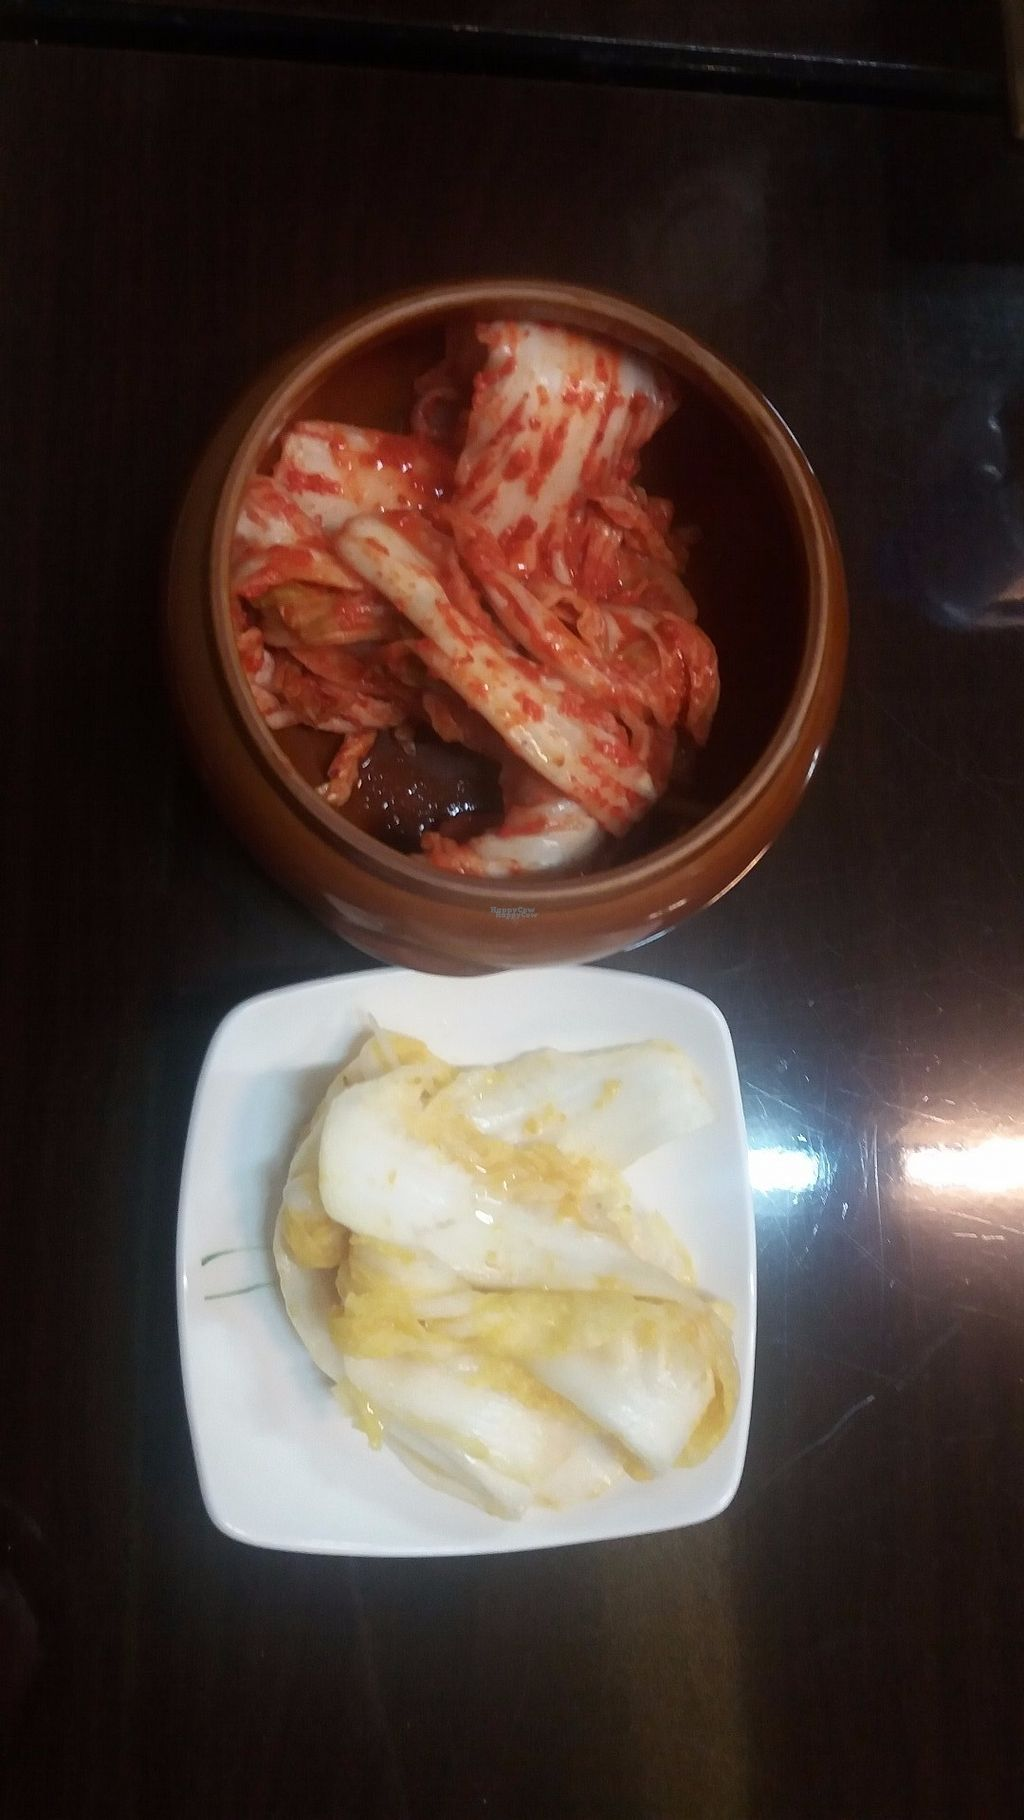 """Photo of Chorokddeul - Green Field - 초록뜰식당  by <a href=""""/members/profile/rburrke"""">rburrke</a> <br/>red and white kimchi <br/> October 10, 2016  - <a href='/contact/abuse/image/64286/180953'>Report</a>"""